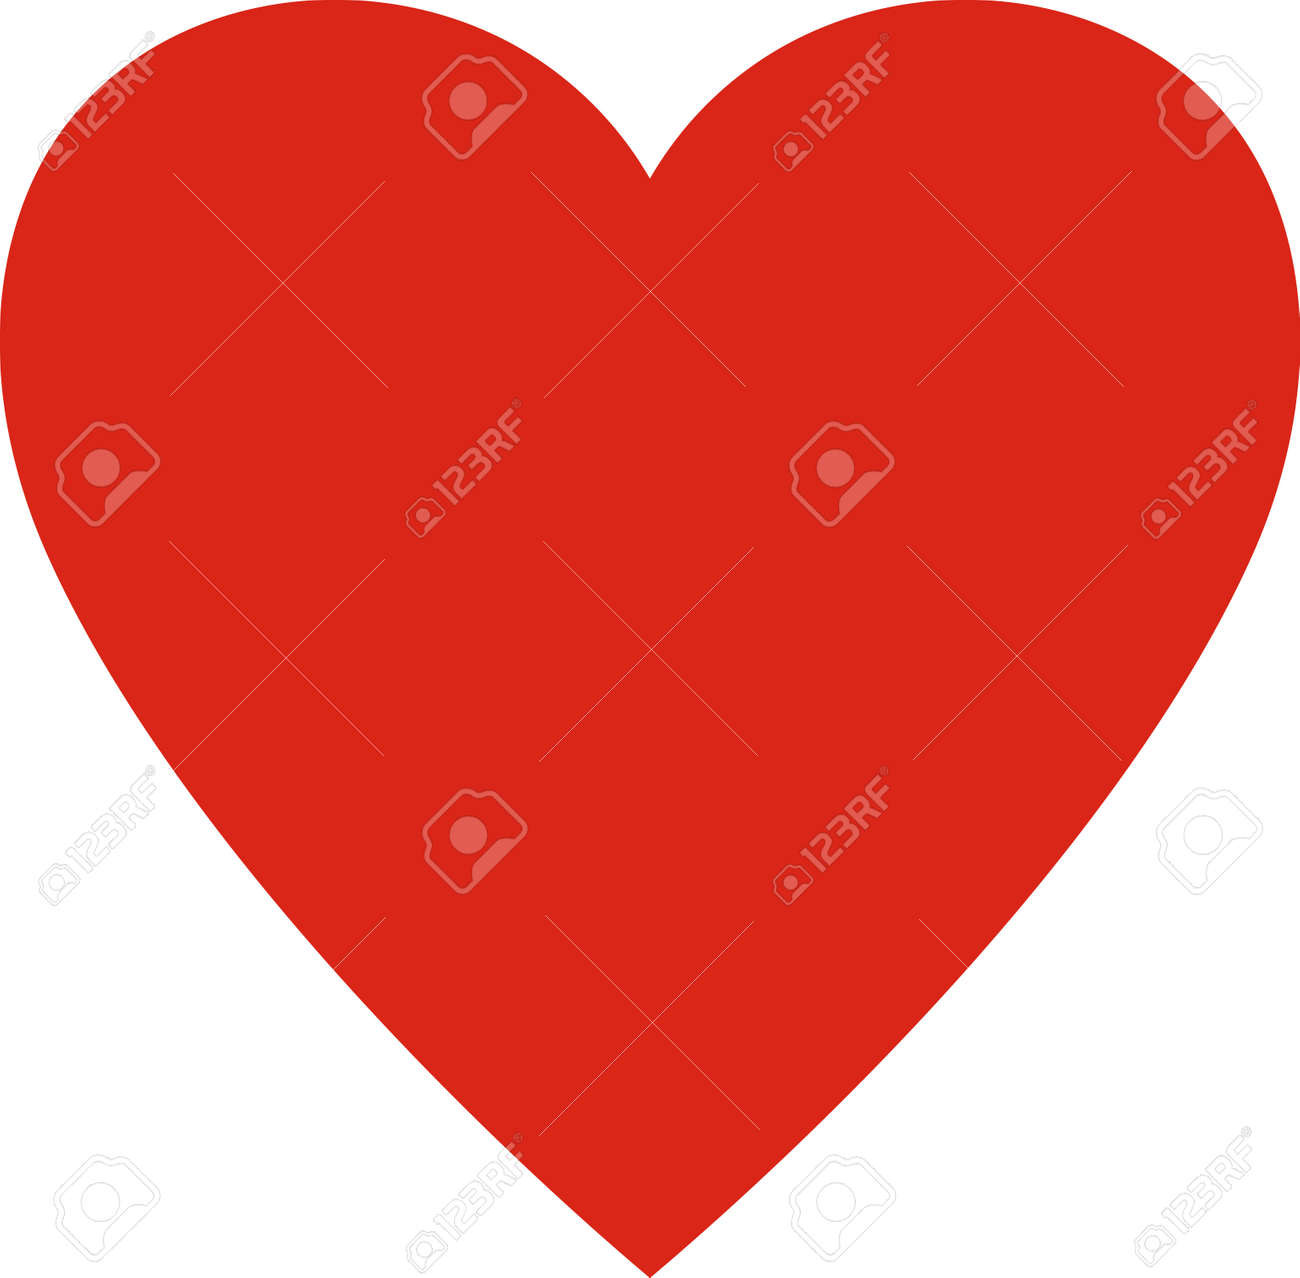 Valentines day. Heart valentine simple vector illustration isolated. Love symbol - 43890793